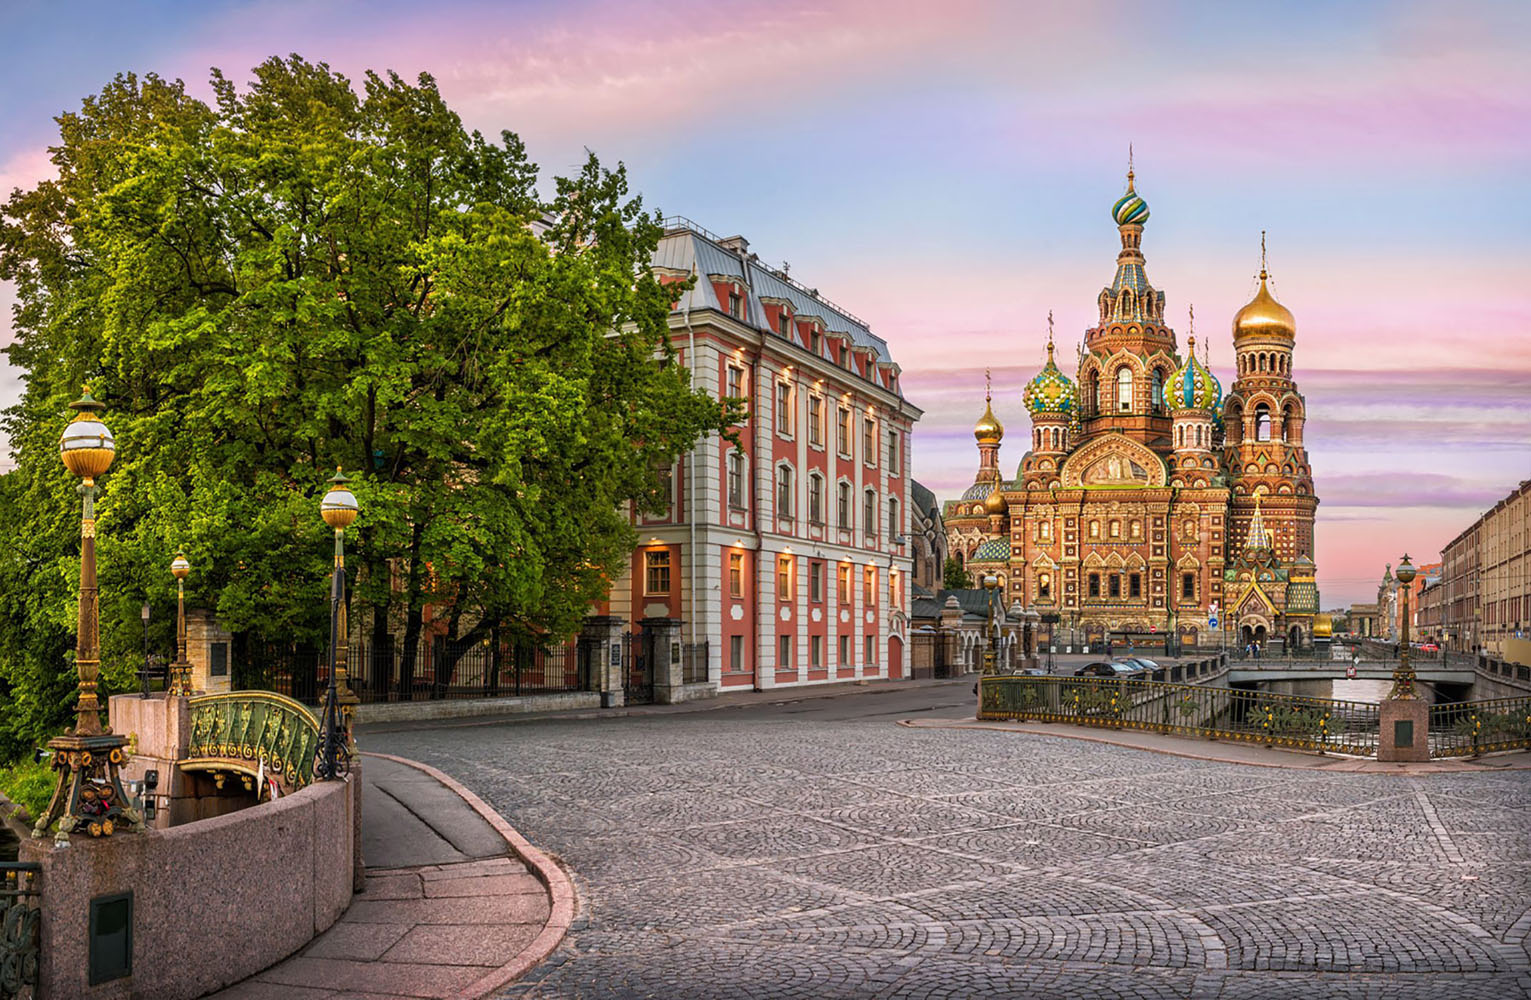 A cobblestone street near the Cathedral of the Savior on Spilled Blood in St Petersburg